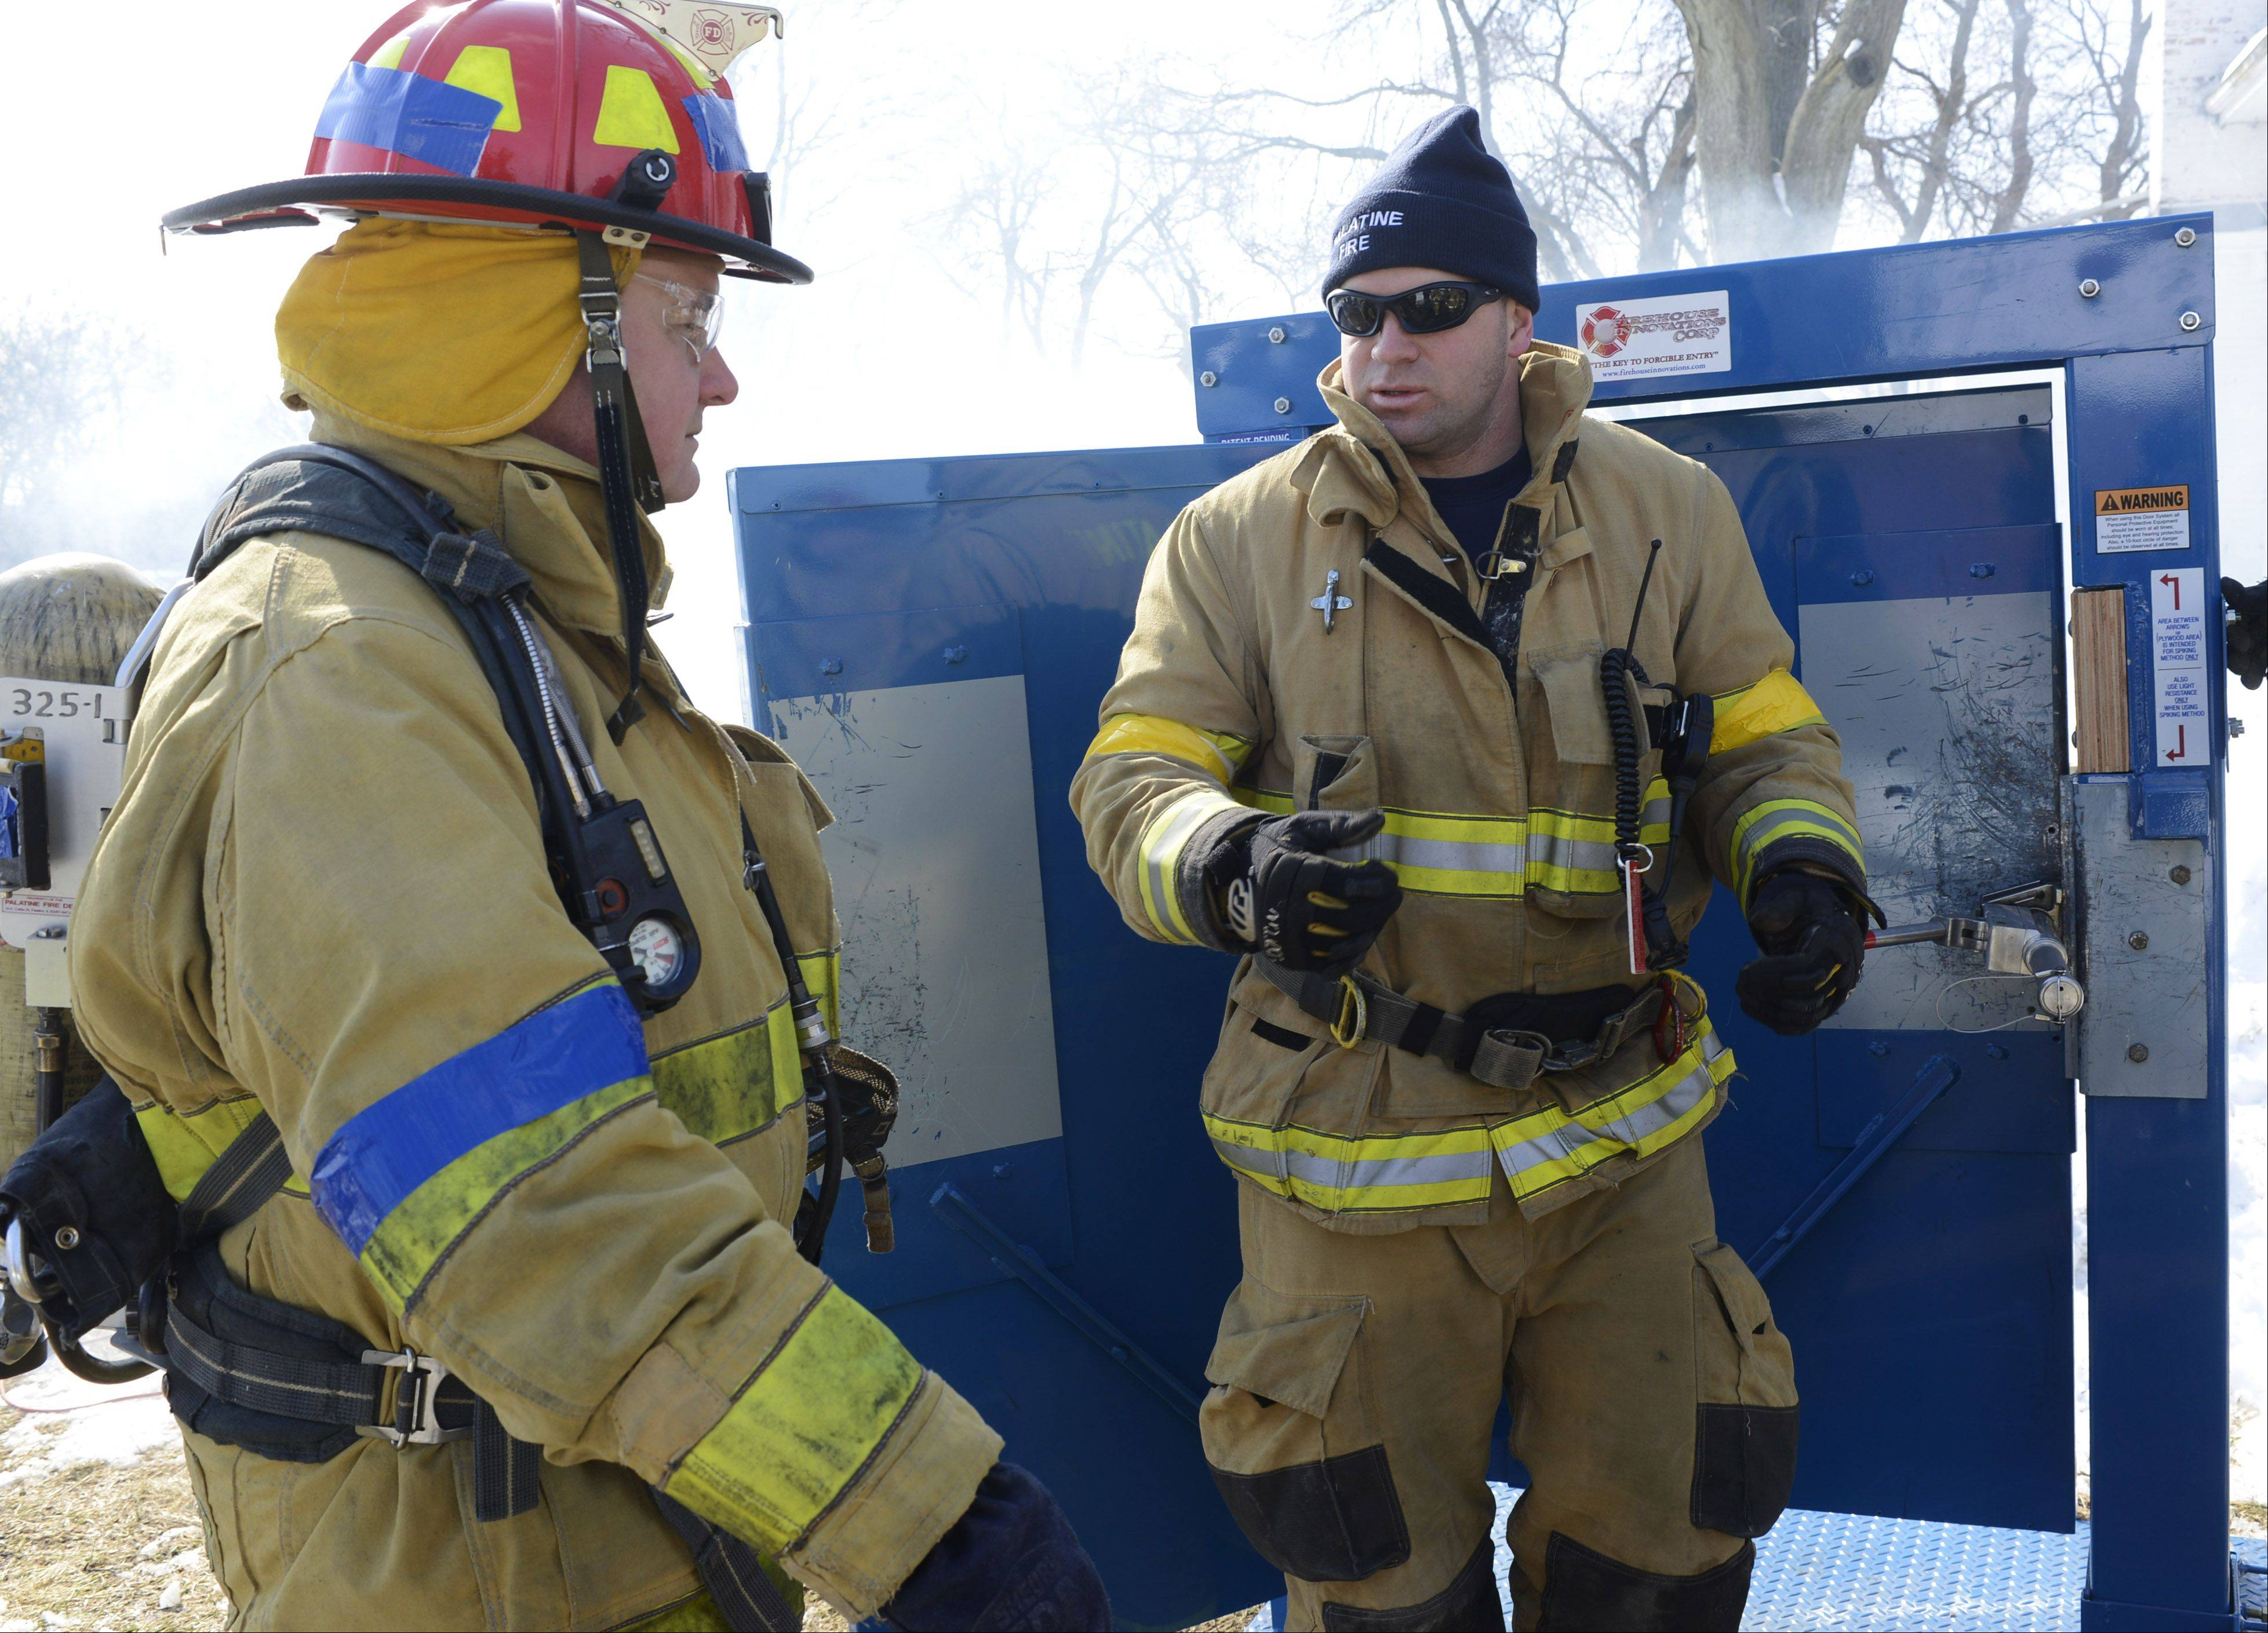 Palatine Village Manager Reid Ottesen, left, learns about forcible entry through a doorway from Palatine firefighter/paramedic Kevin Burris. Several elected and appointed officials participated in the fire training session Friday on the former Camelot property in Palatine.